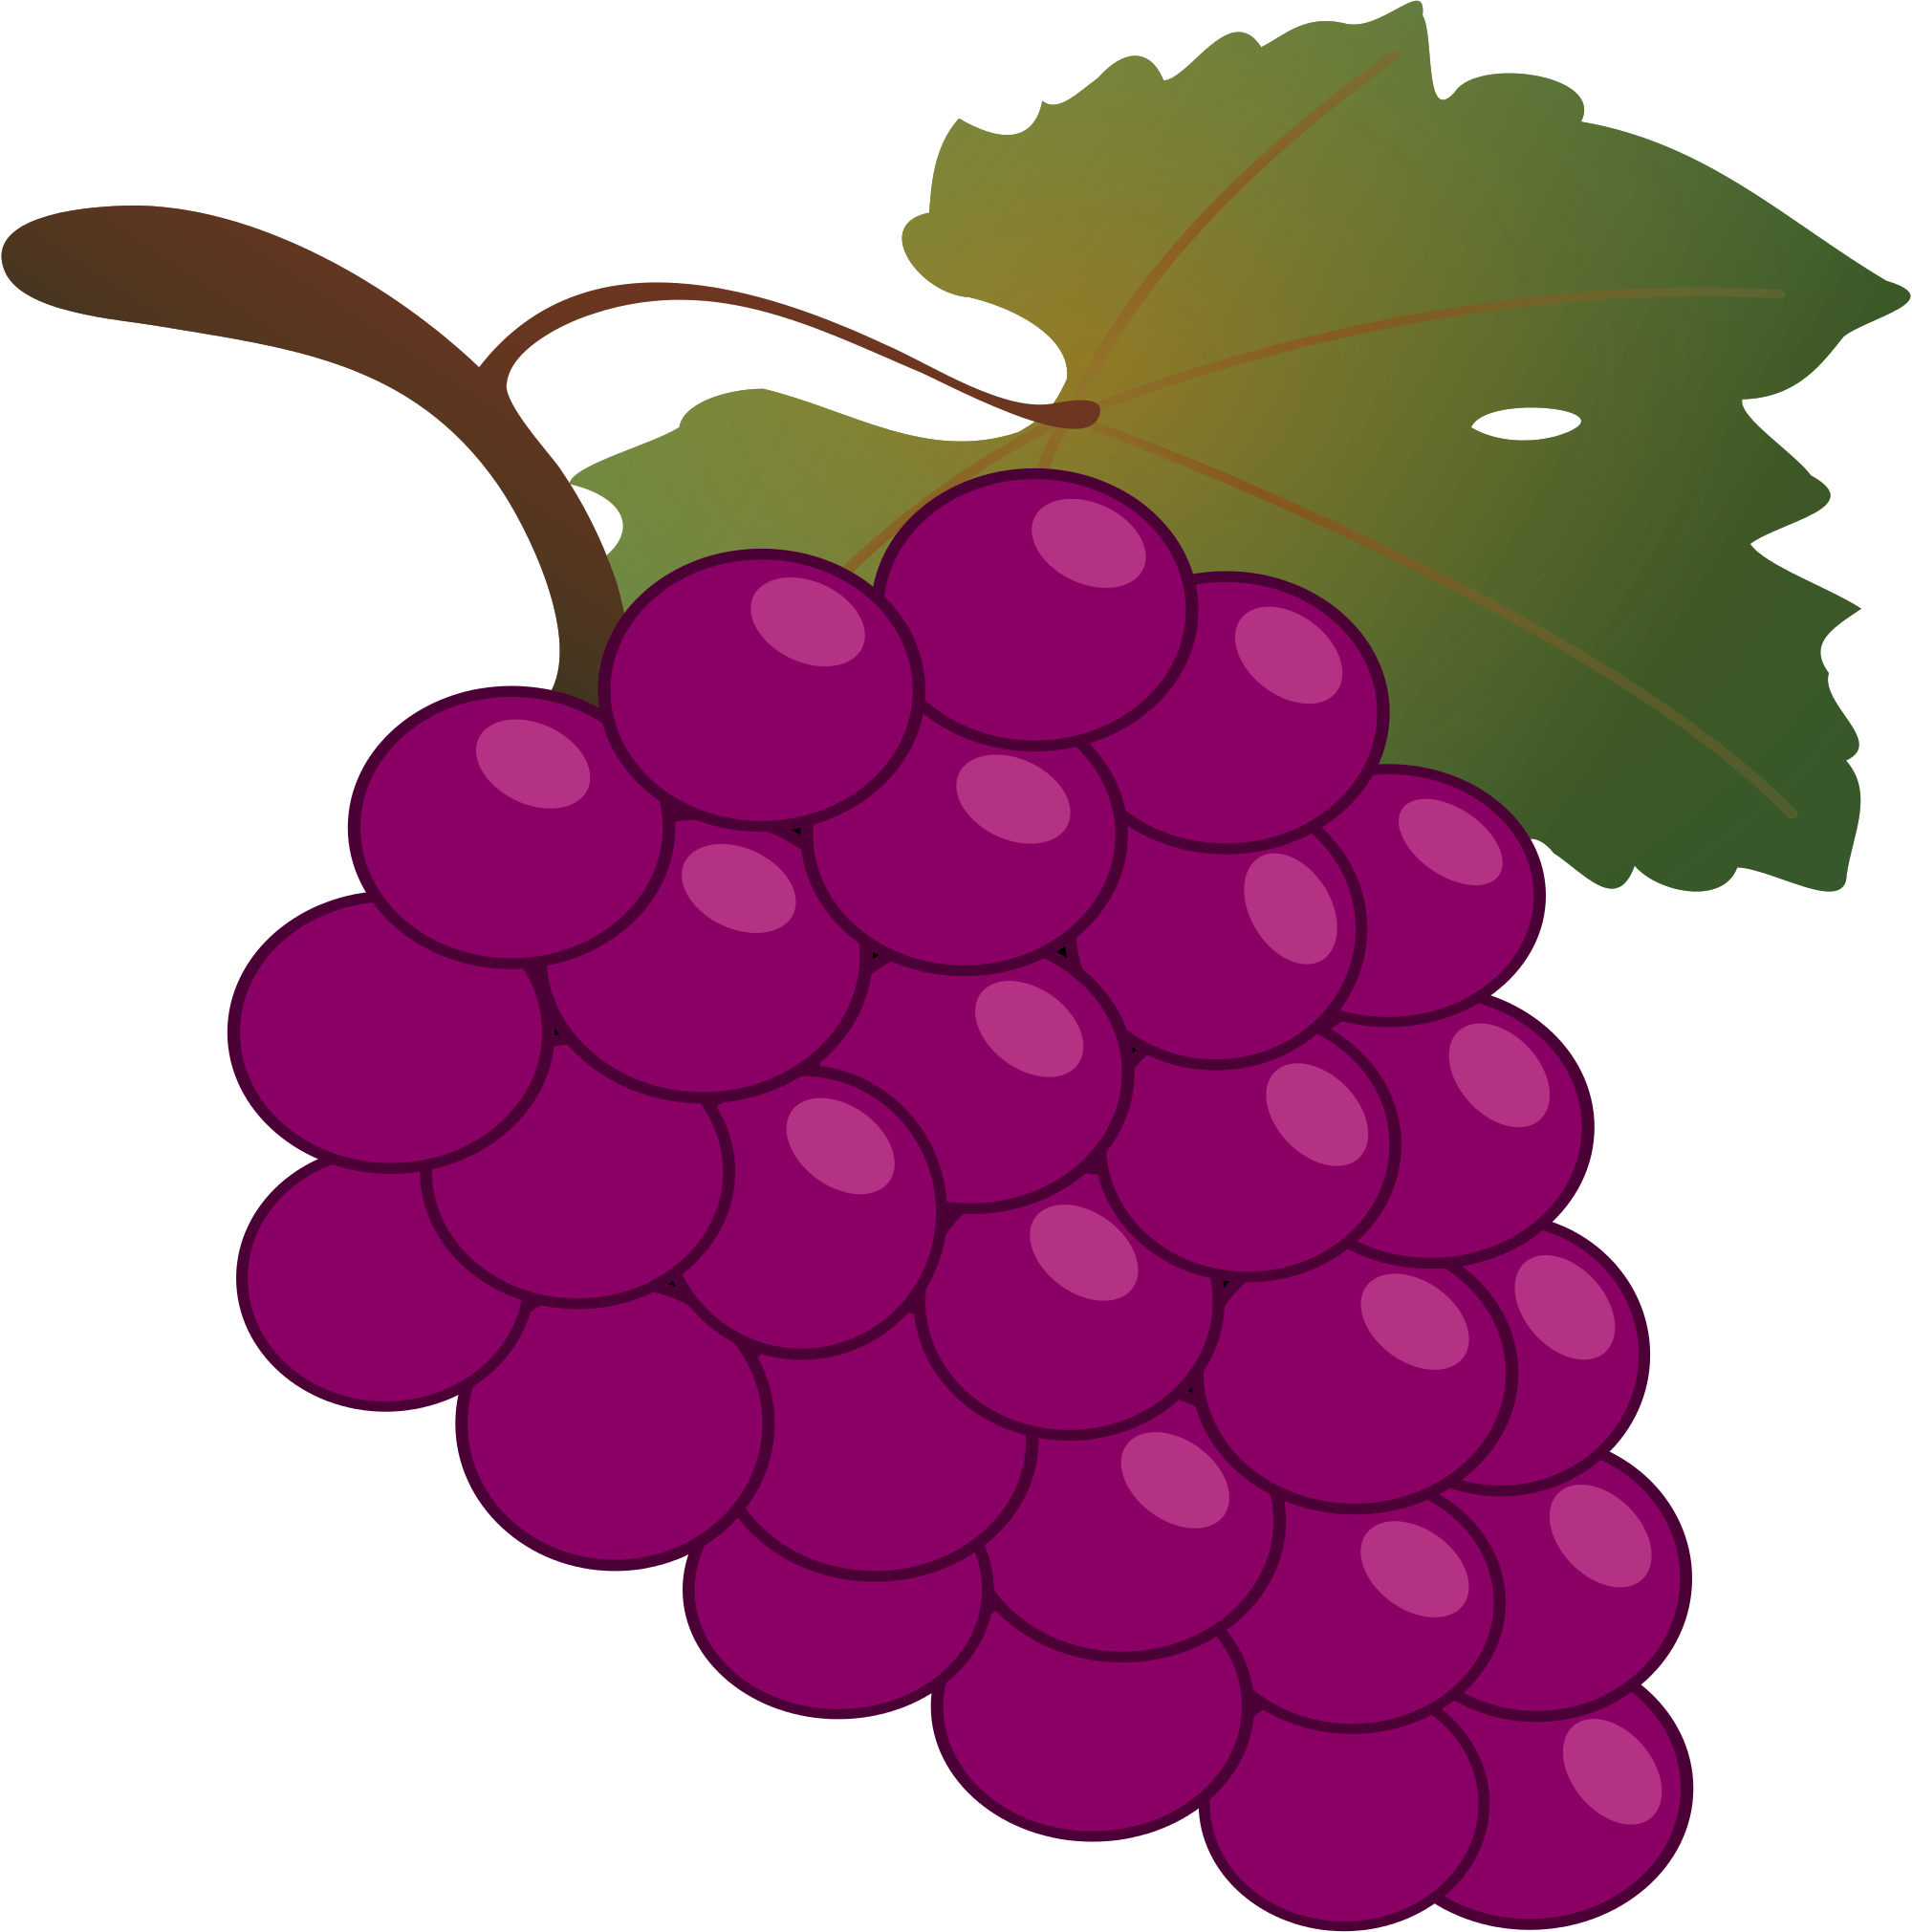 Grapes to free images. Grape clipart printable